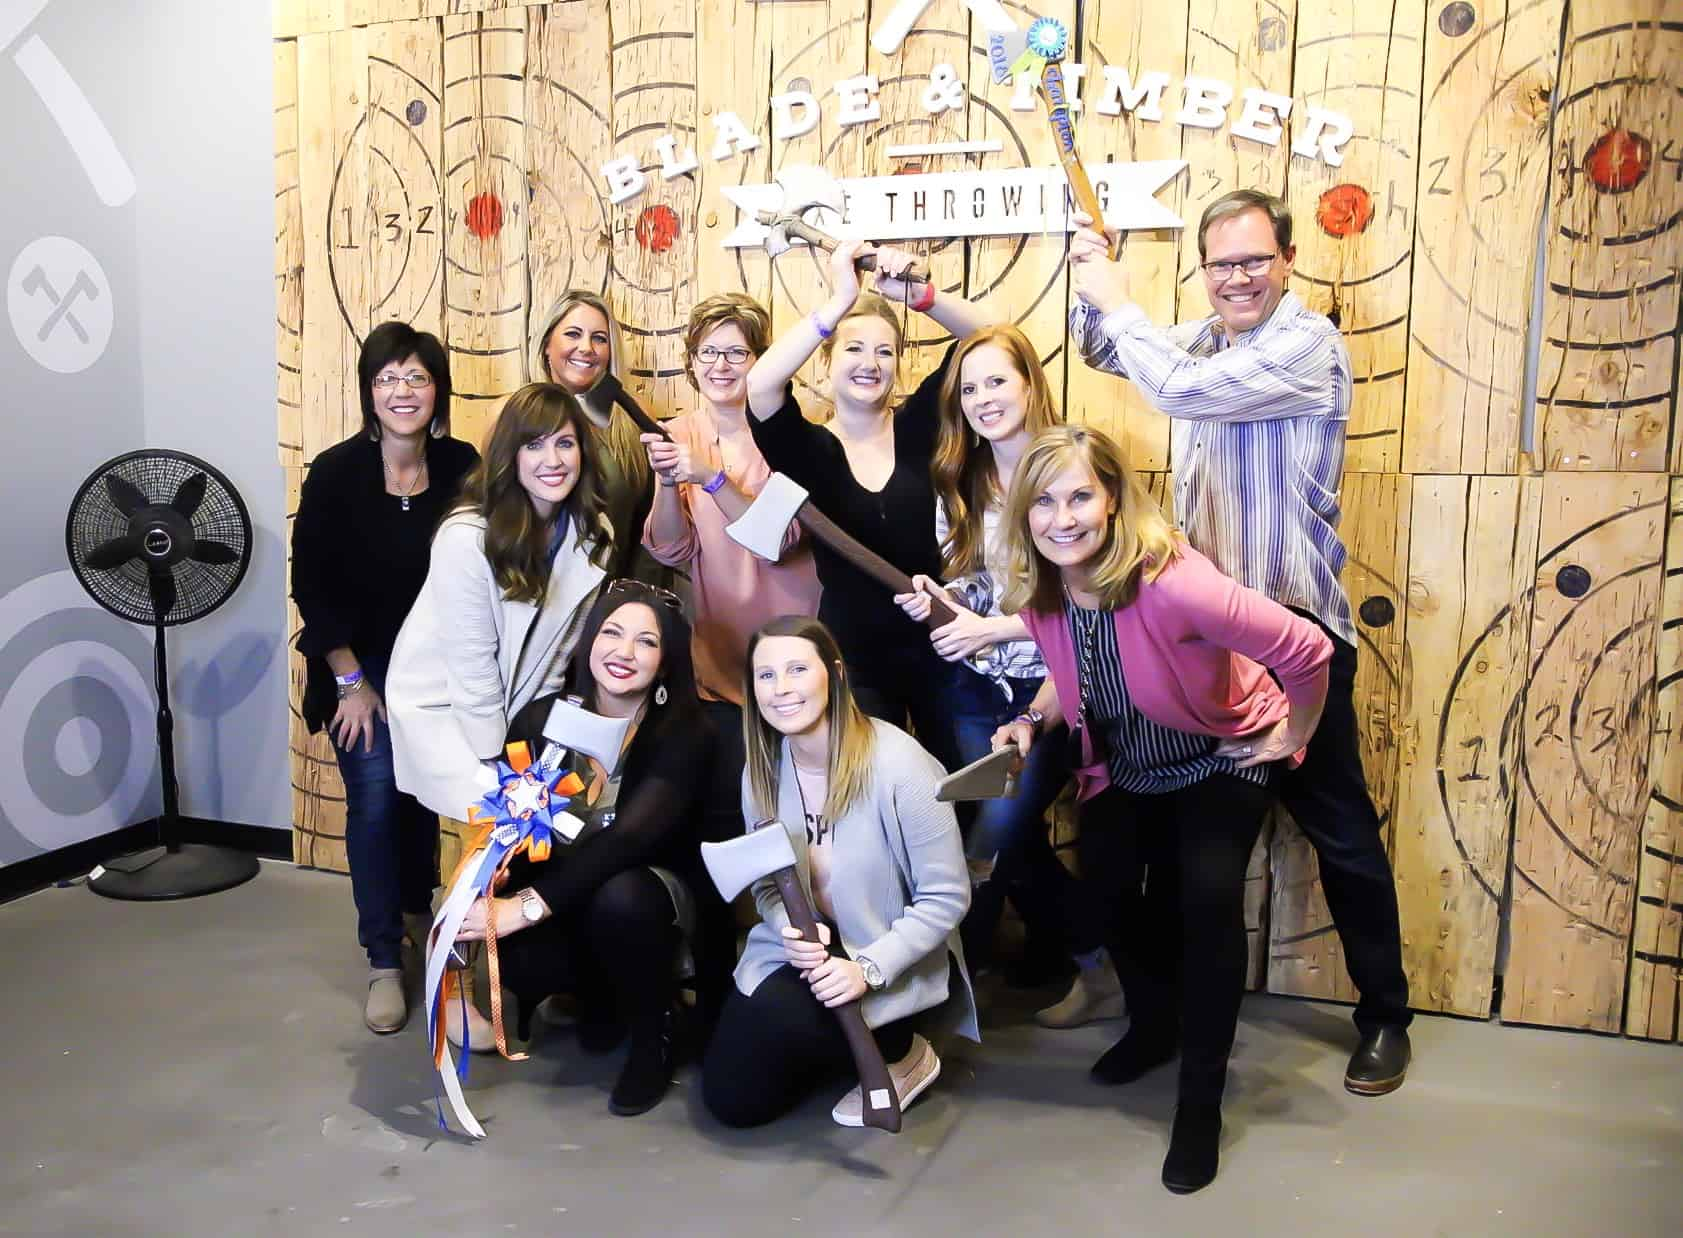 team-ax-throwing  - Braces and Invisalign in Kansas City, Overland Park, Olathe, and Paola, Kansas - Oltjen Orthodontics